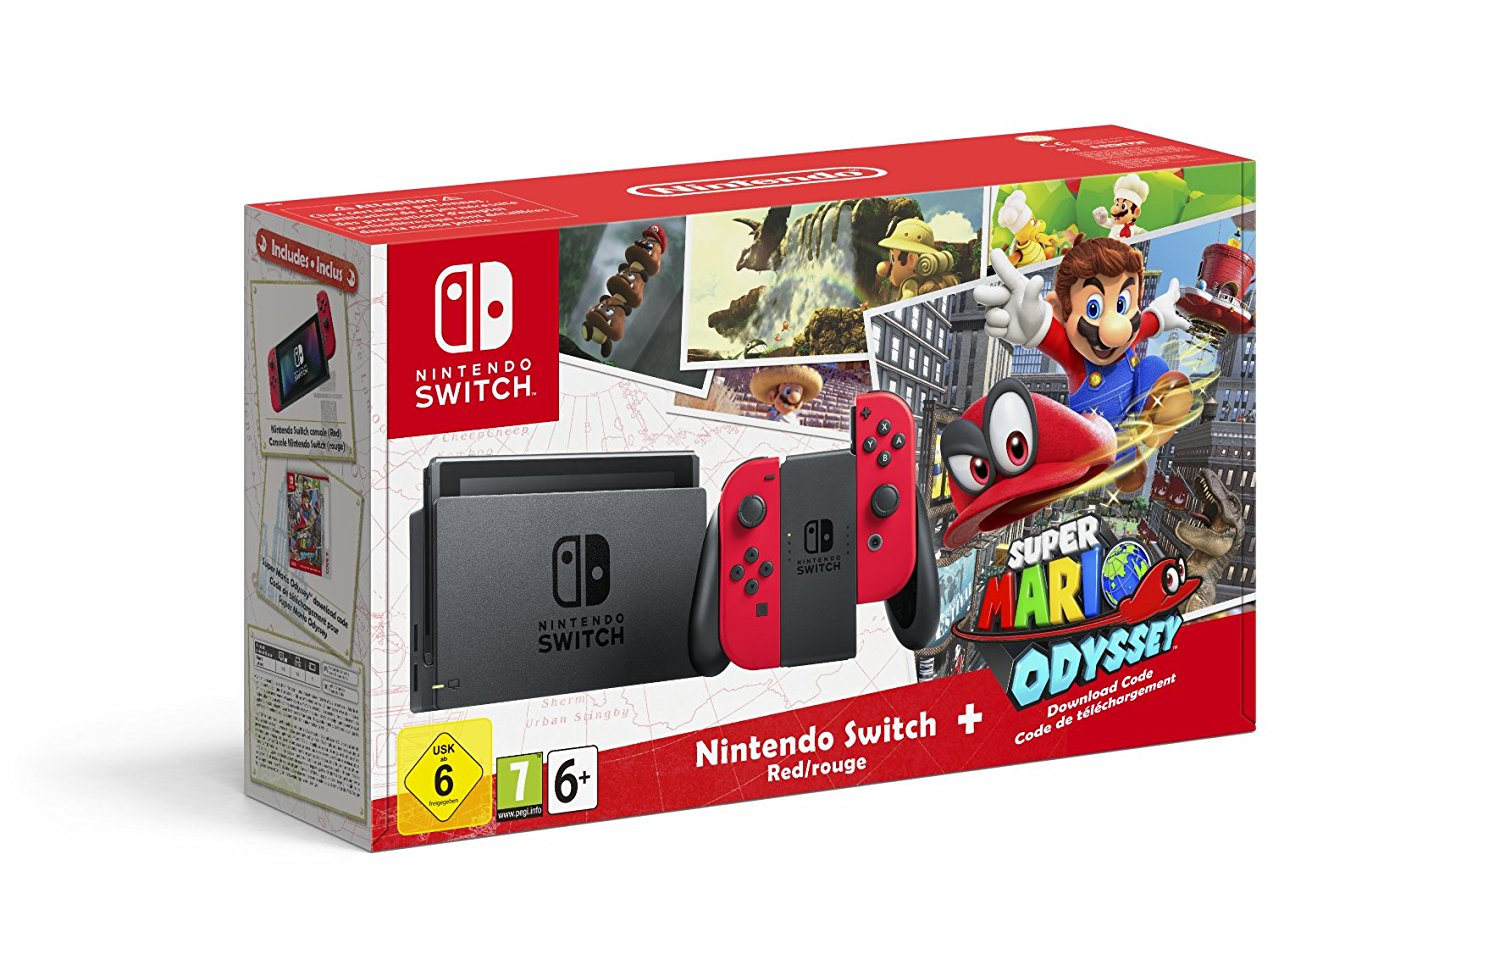 Console Nintendo Switch + Mario Odyssey et ses manettes rouges